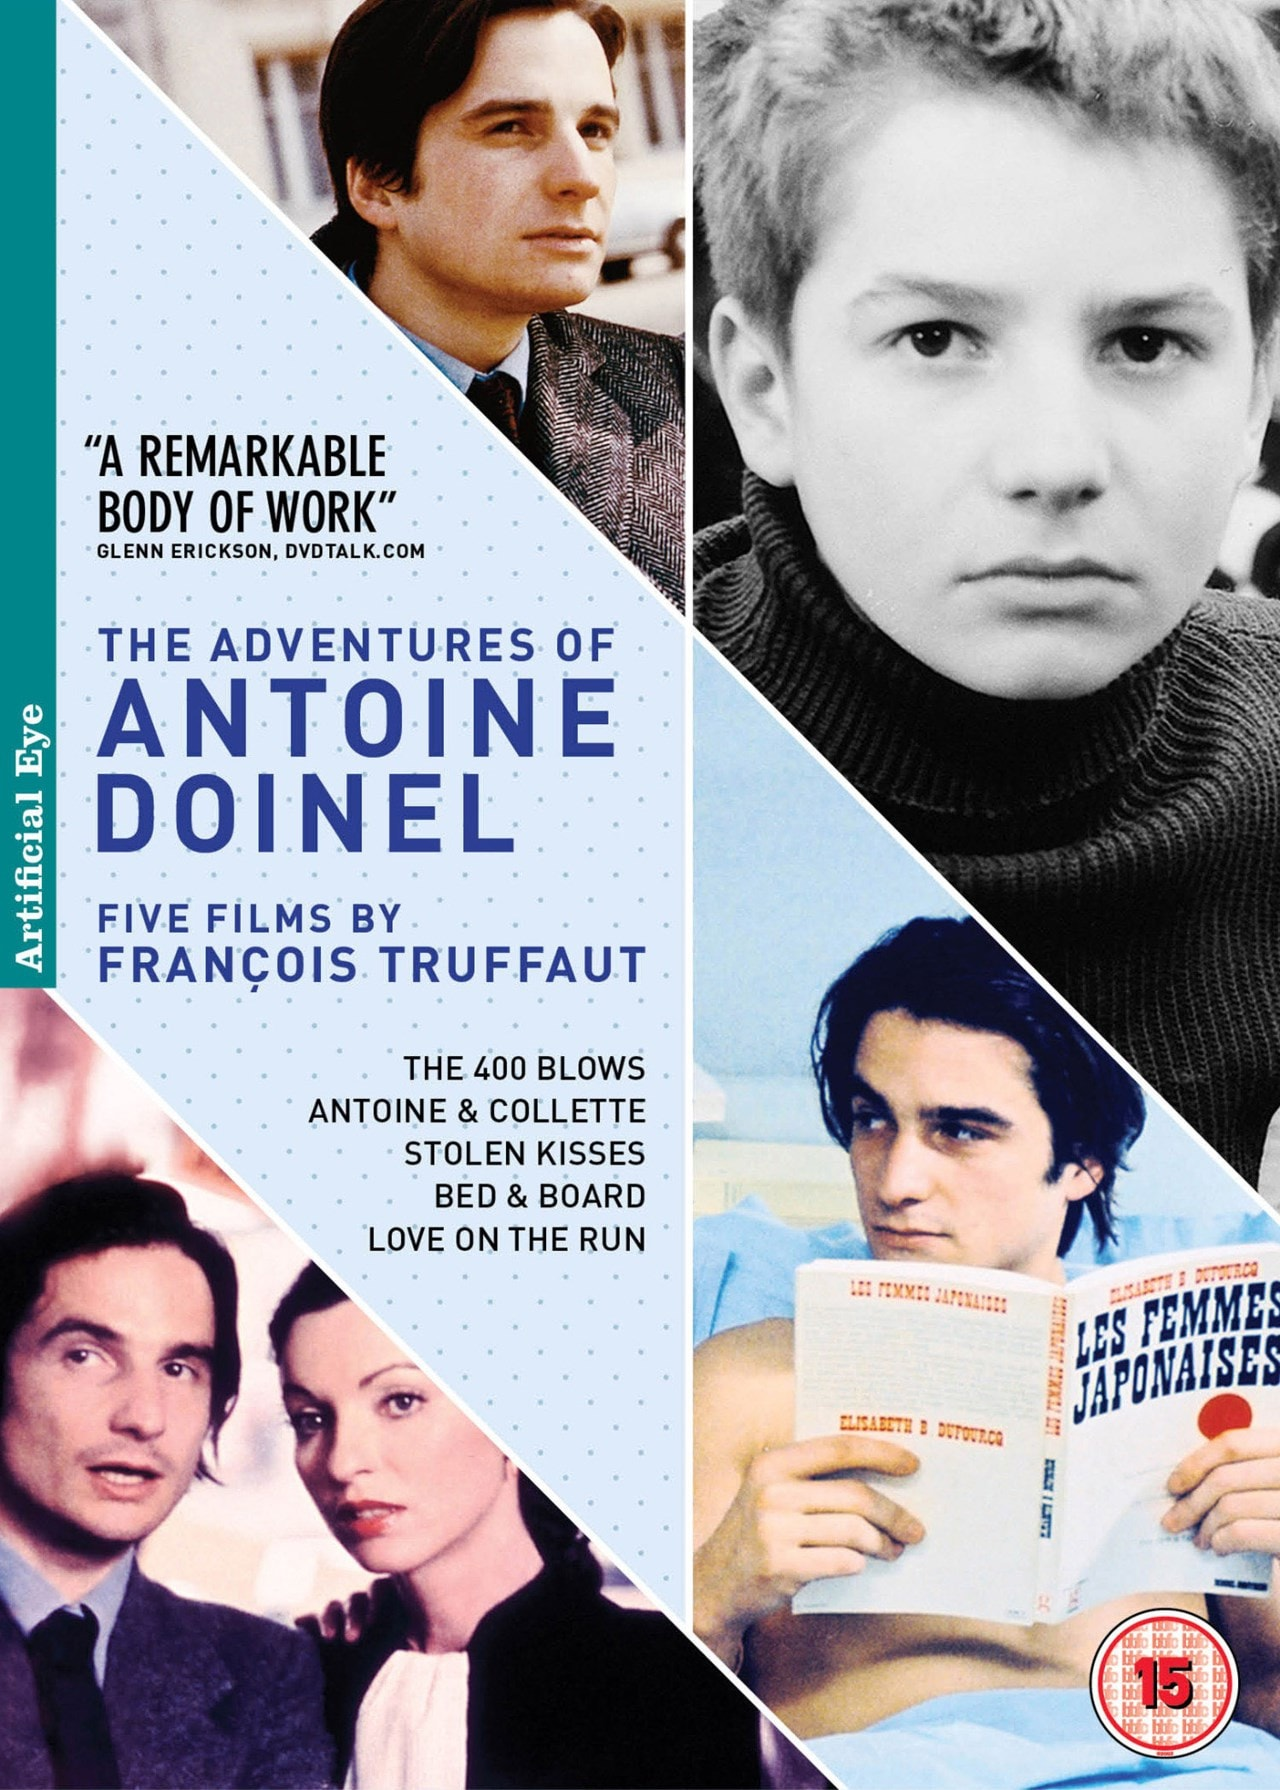 The Adventures of Antoine Doinel: Five Films By Francois Truffaut - 1